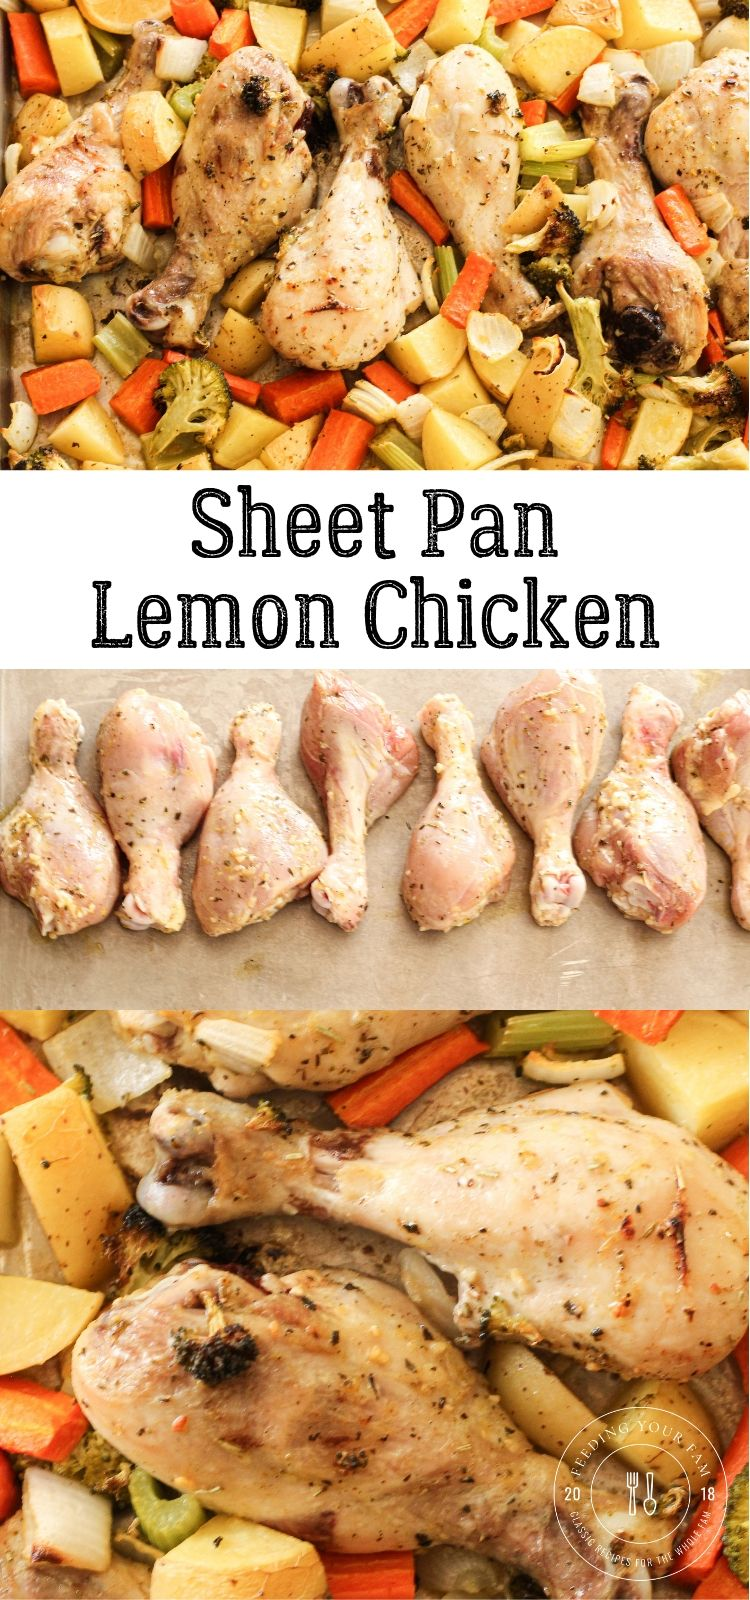 lemon chicken and vegetables on a sheet pan